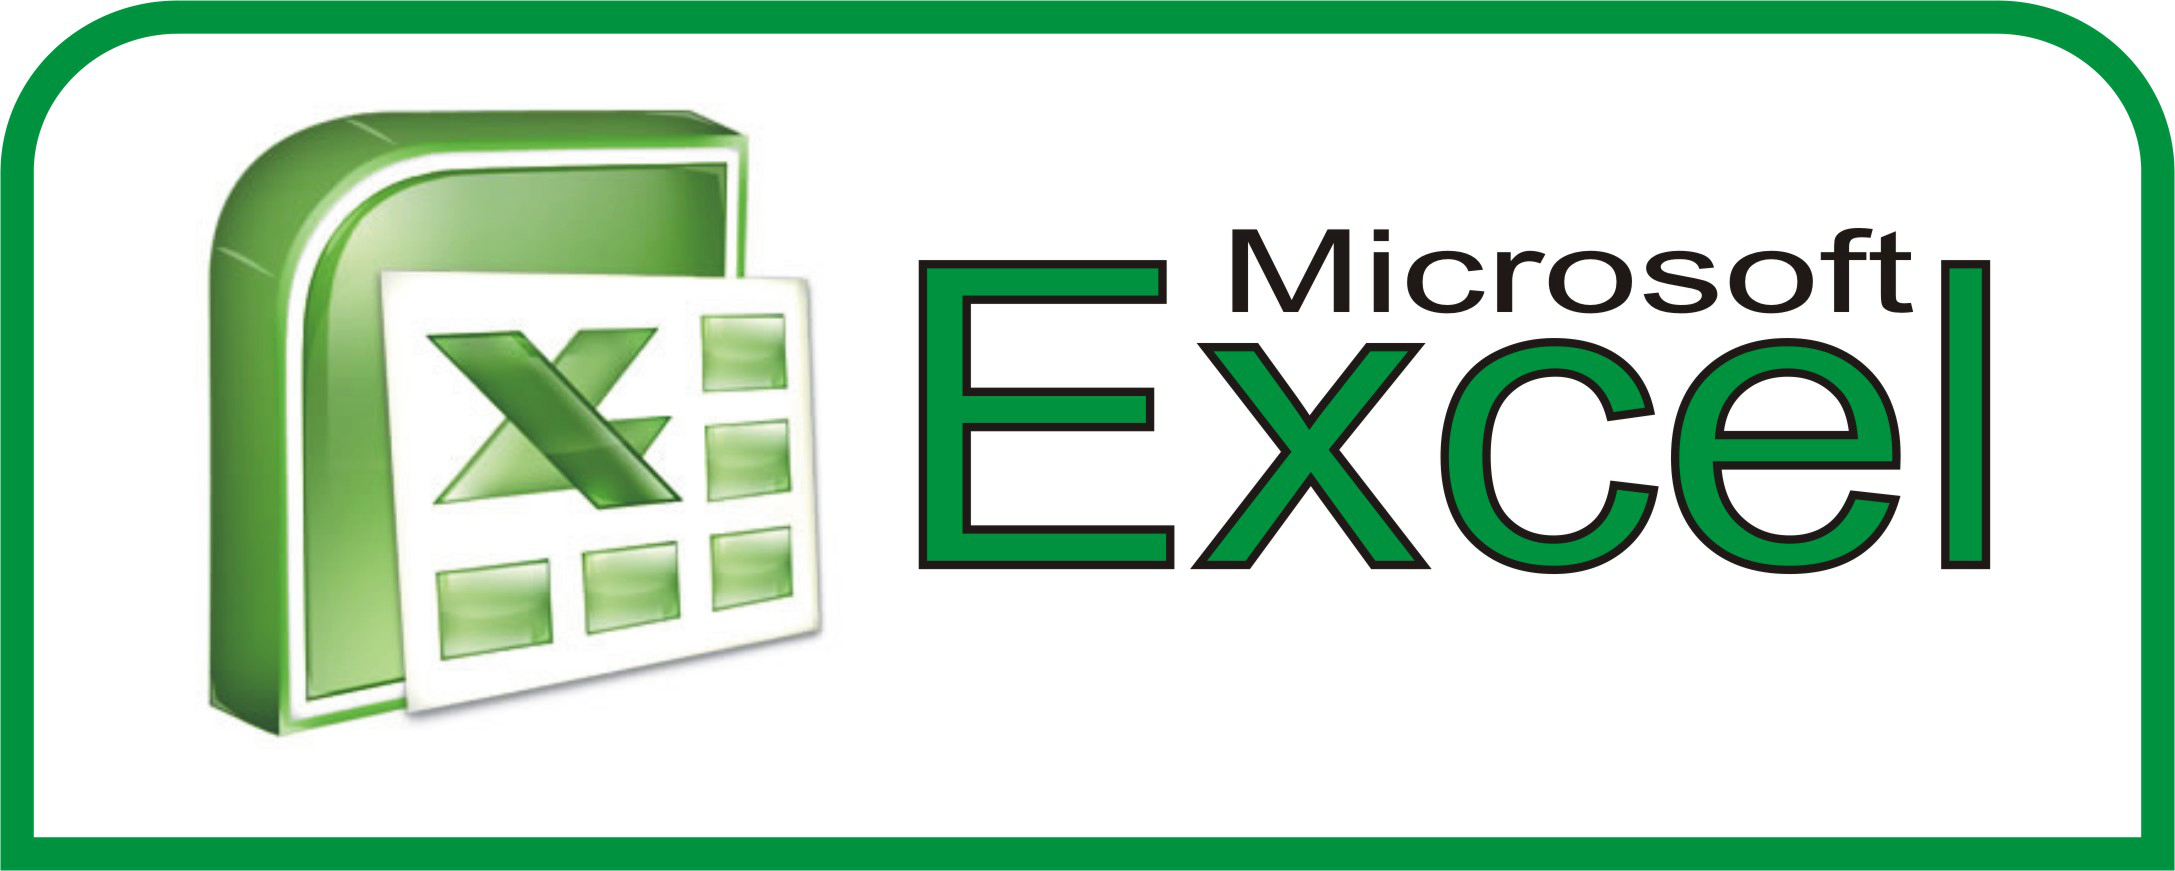 Ediblewildsus  Mesmerizing  Excel Shortcuts You Probably Didnt Know About  Techdissected With Fair Excel Calculations Besides How To Plot In Excel Furthermore Cell Style Excel With Amusing How To Unhide In Excel Also Sample Excel Data In Addition How To Create Pivot Table In Excel  And V Lookup Excel As Well As How To Make A Graph With Excel Additionally If And Or Excel From Techdissectedcom With Ediblewildsus  Fair  Excel Shortcuts You Probably Didnt Know About  Techdissected With Amusing Excel Calculations Besides How To Plot In Excel Furthermore Cell Style Excel And Mesmerizing How To Unhide In Excel Also Sample Excel Data In Addition How To Create Pivot Table In Excel  From Techdissectedcom